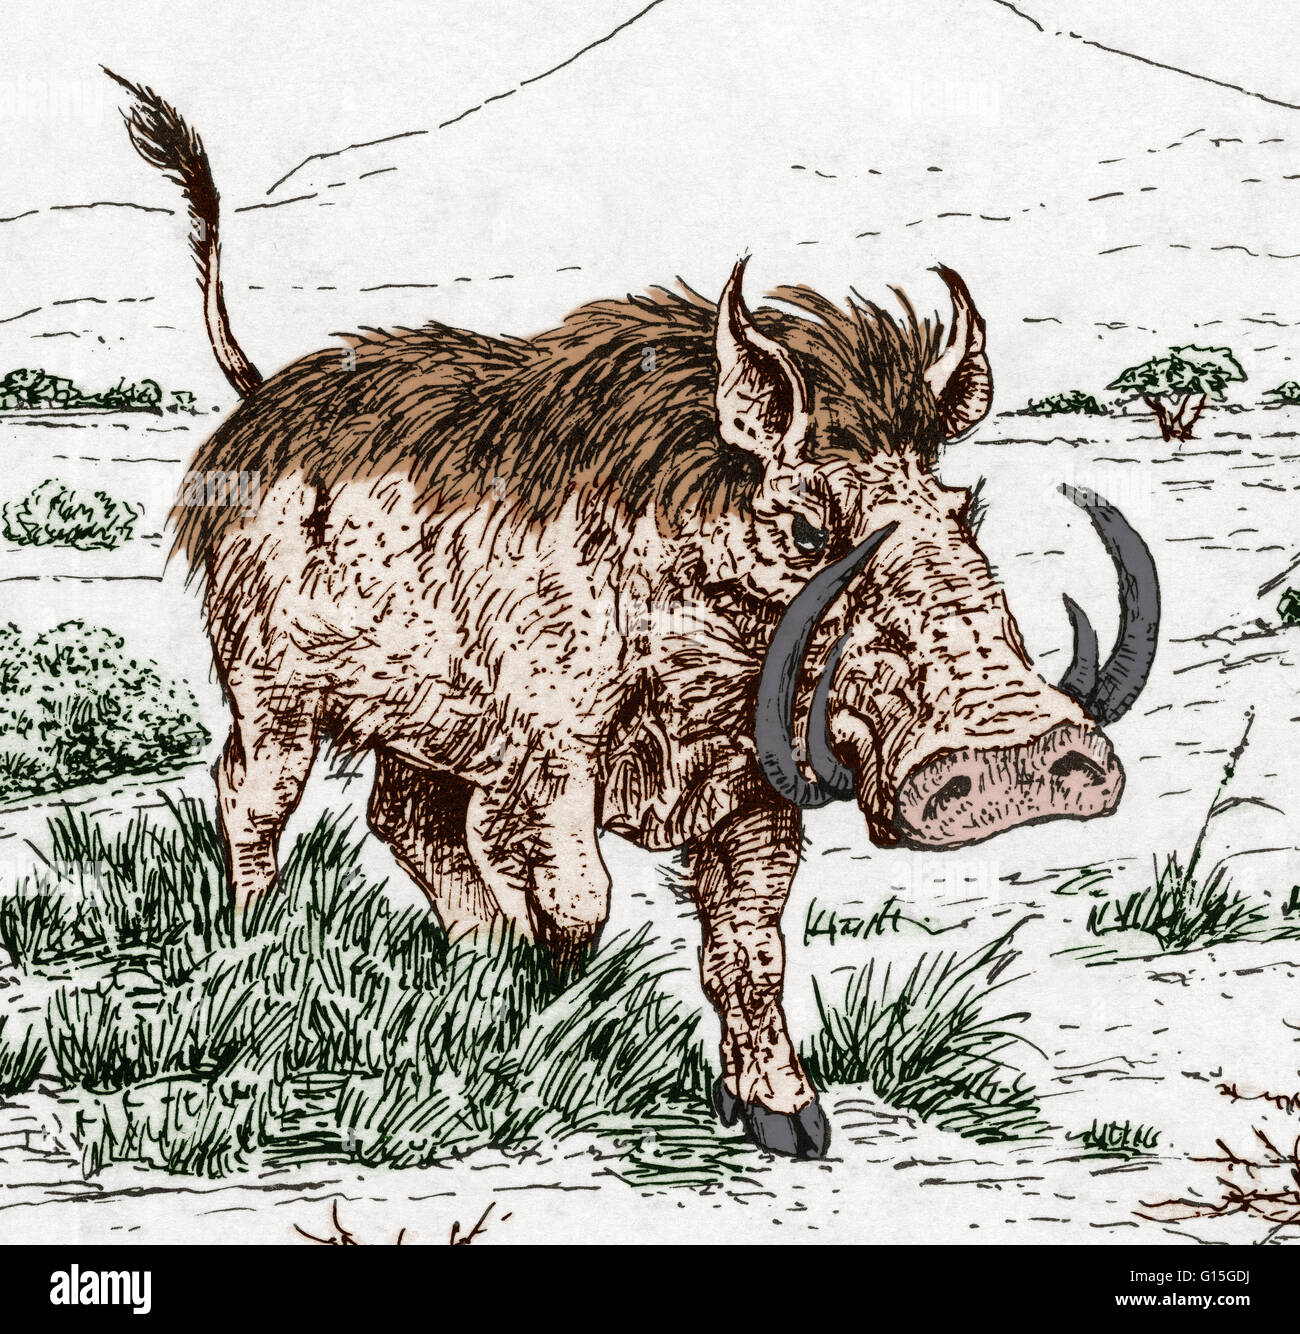 Illustration of the extinct genus notochoerus from the suidae (pig) family. - Stock Image